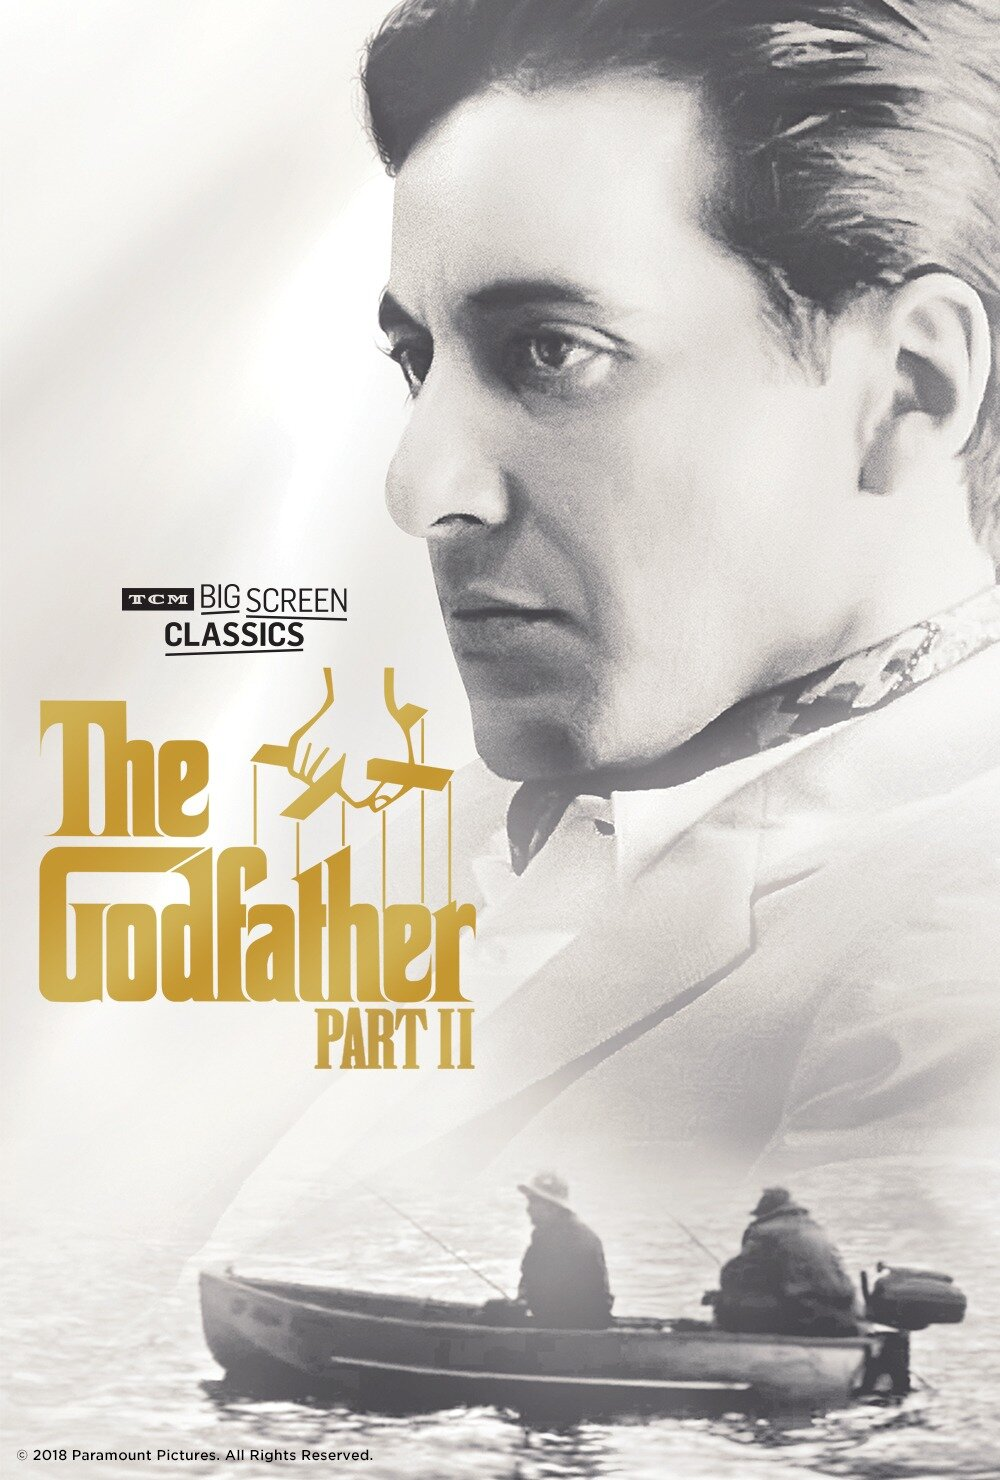 godfather-poster-edea9d5ff4690308fb7cd133ae515b0f.jpg